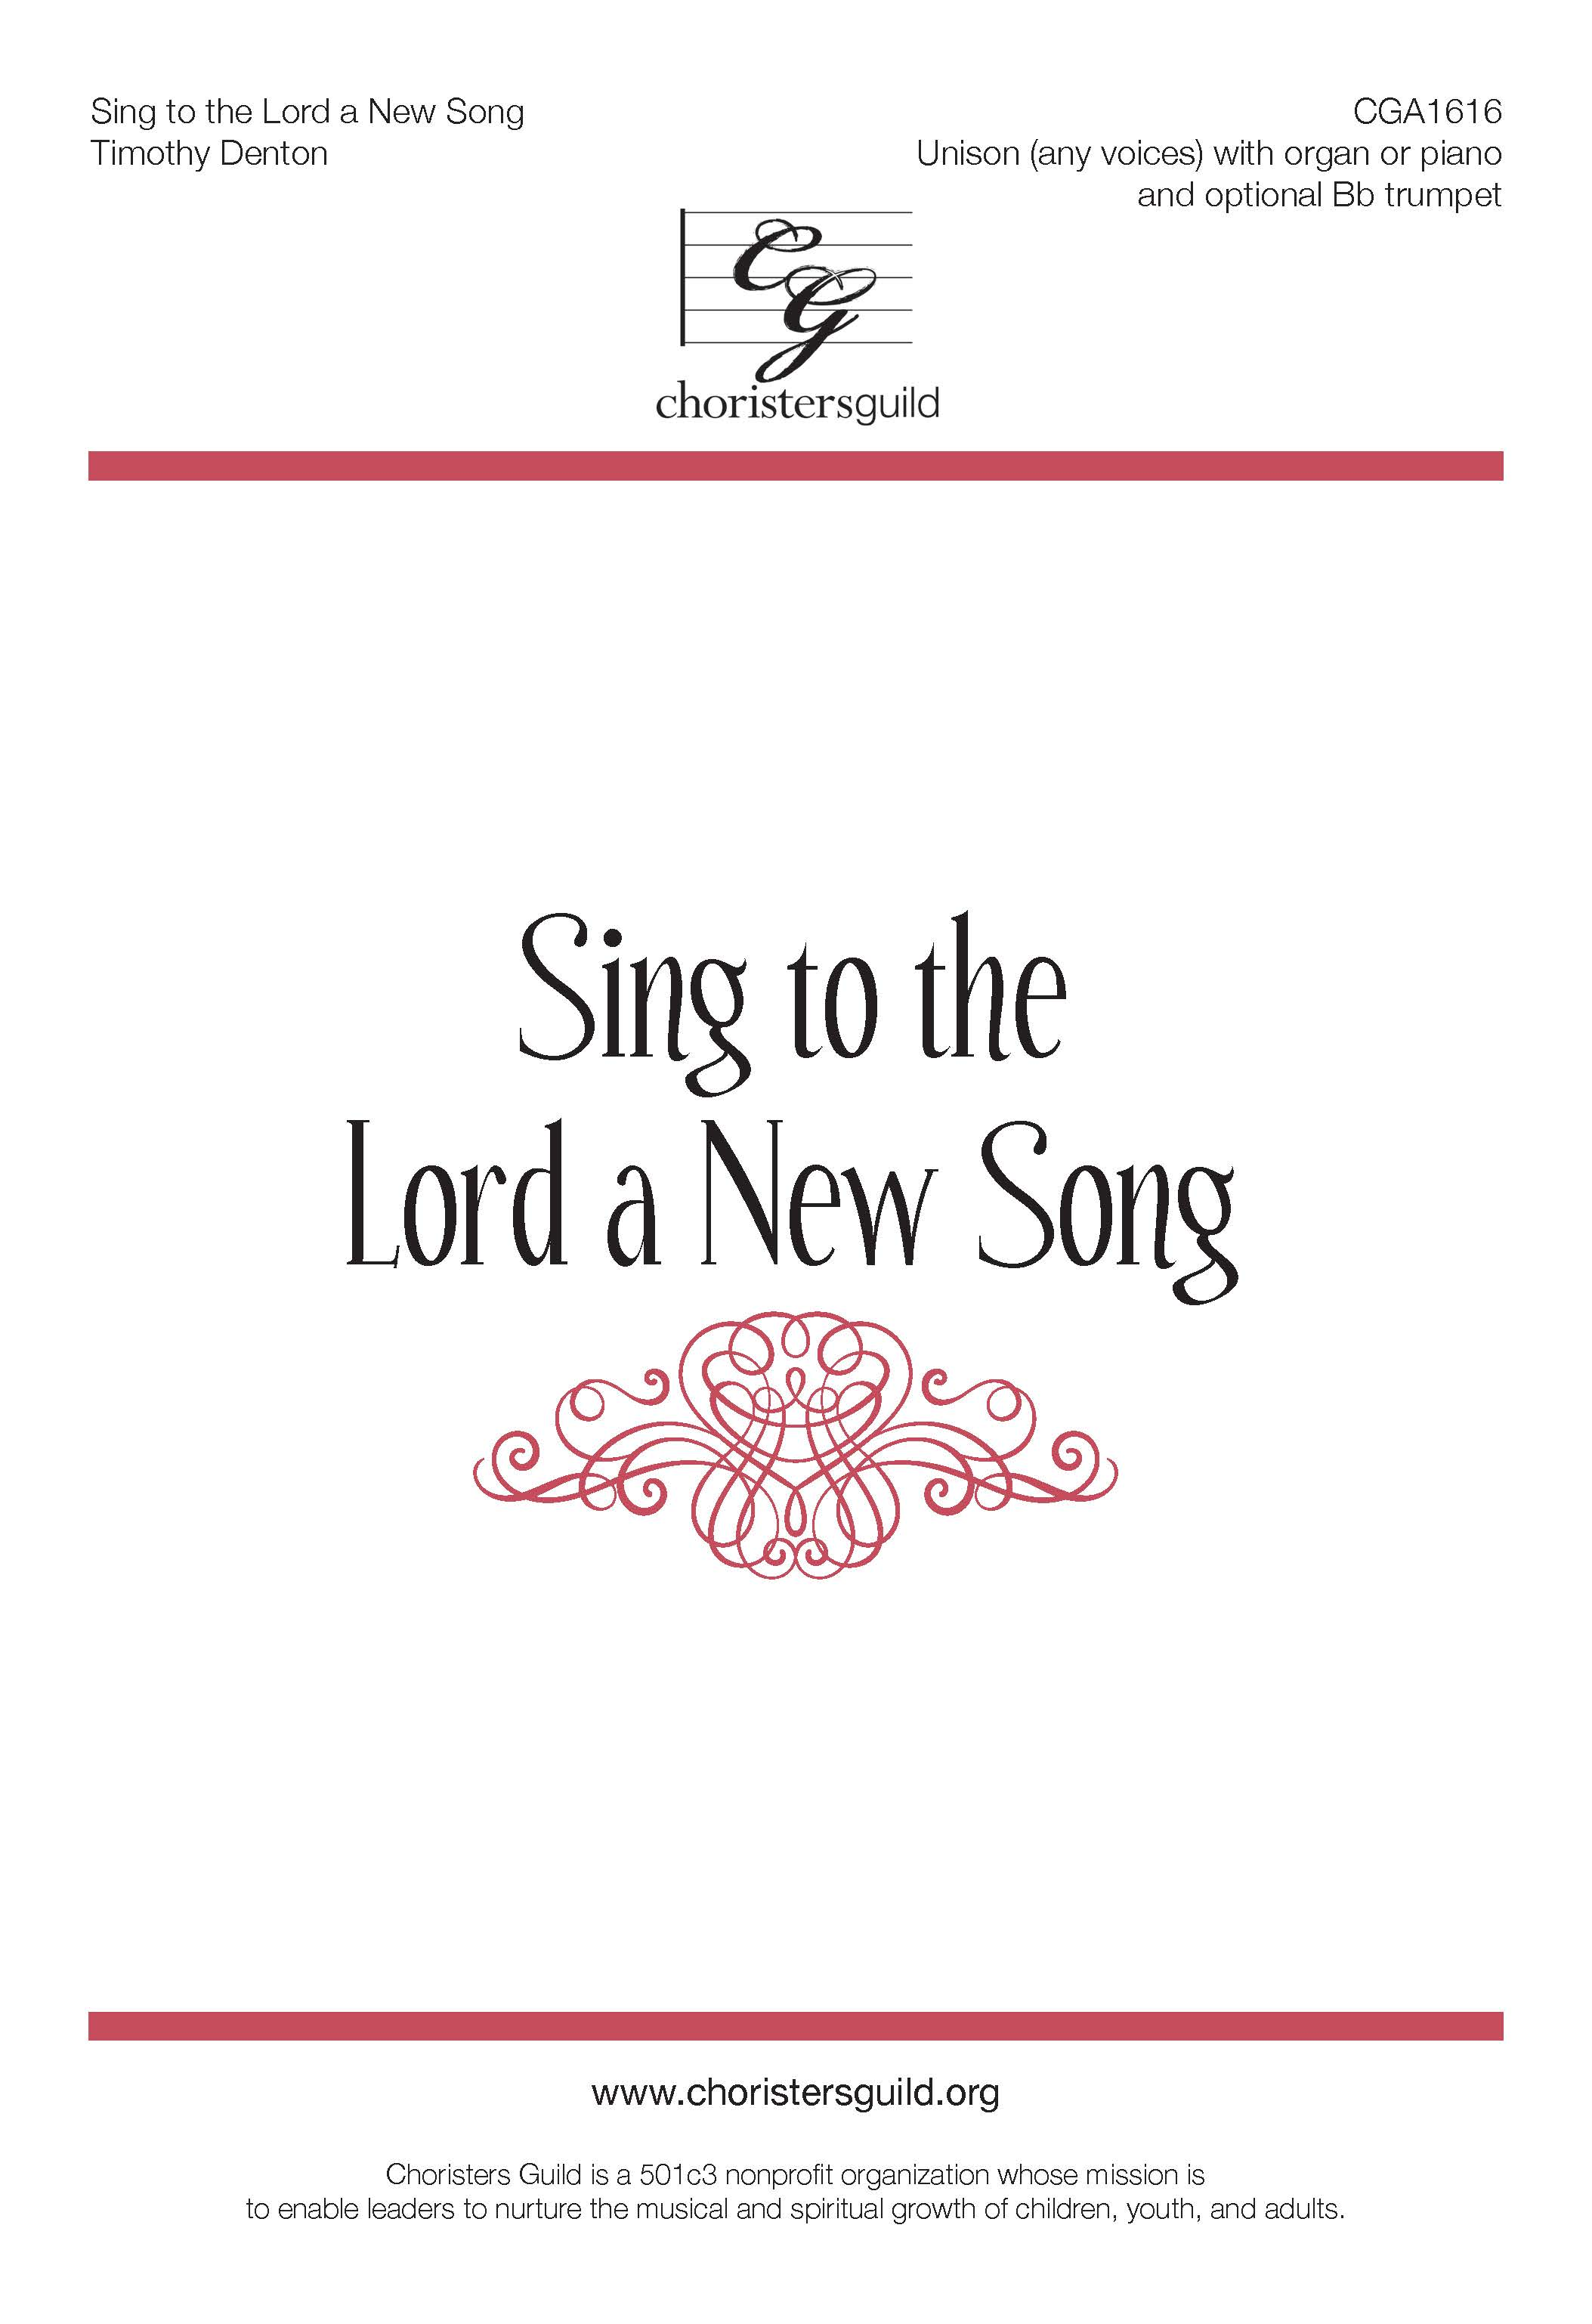 Sing to the Lord a New Song - Unison